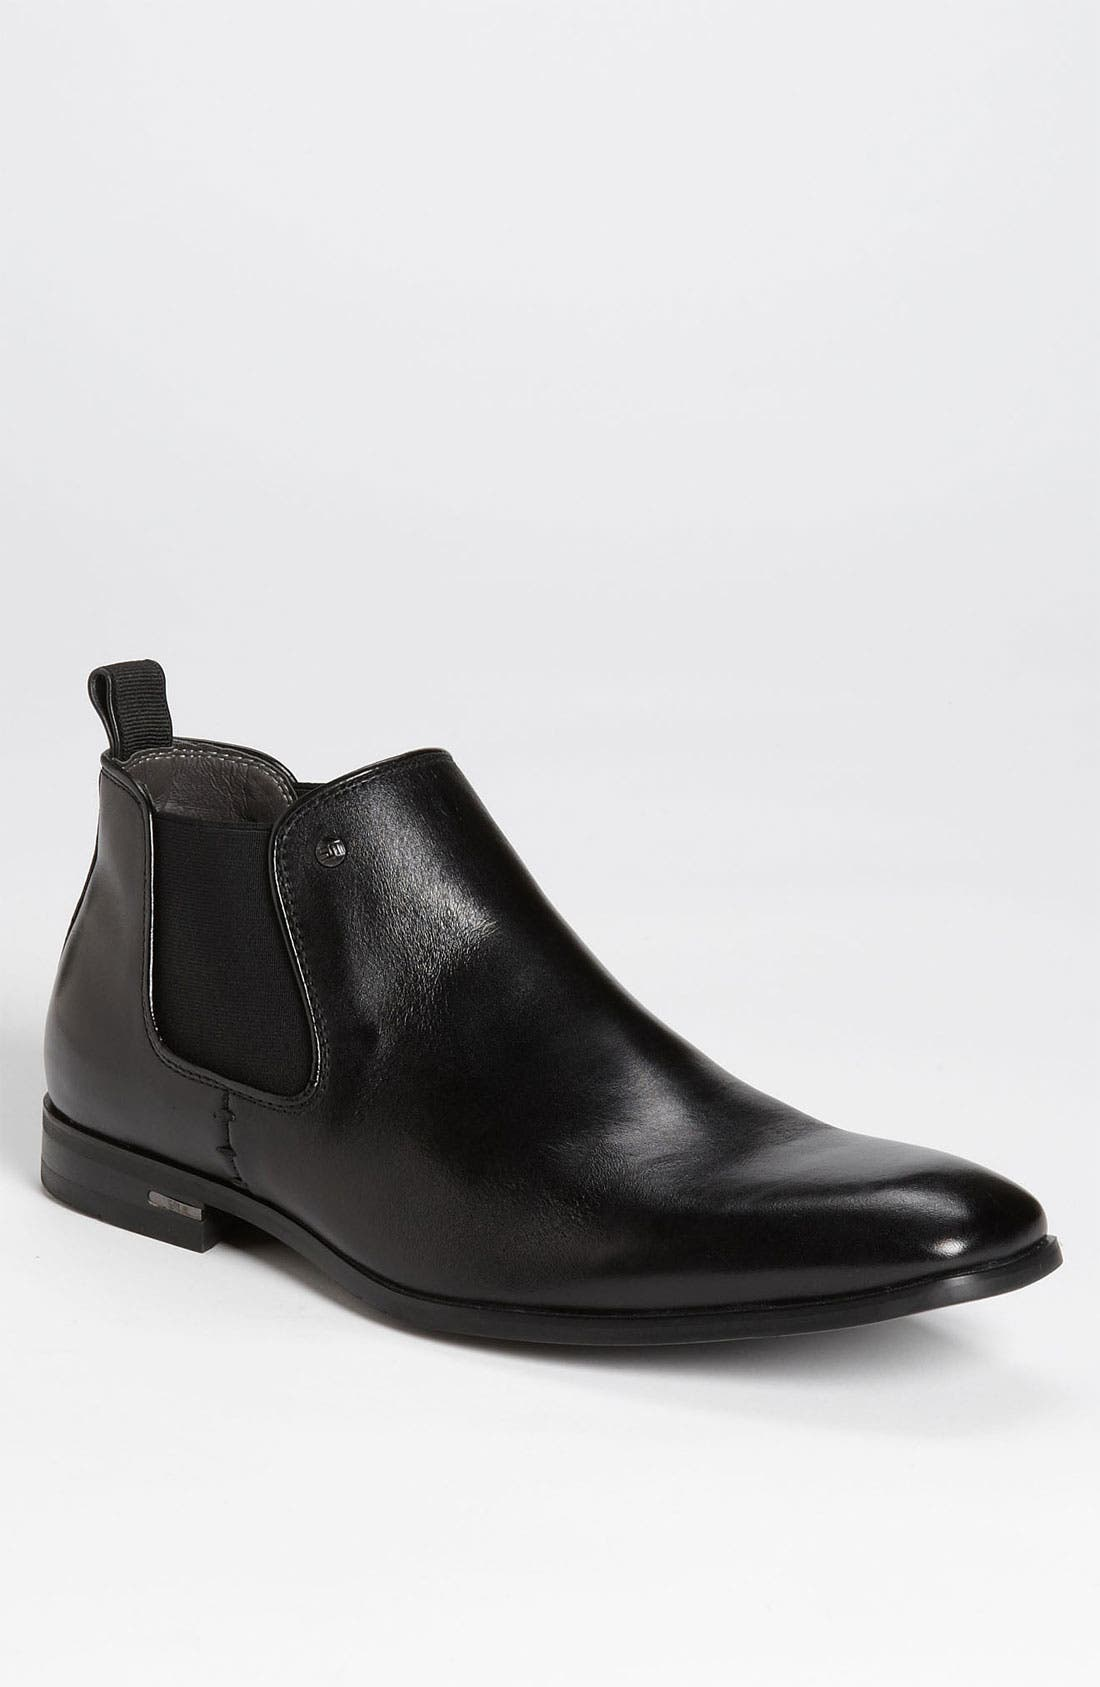 Alternate Image 1 Selected - Steve Madden 'Jiffer' Chelsea Boot